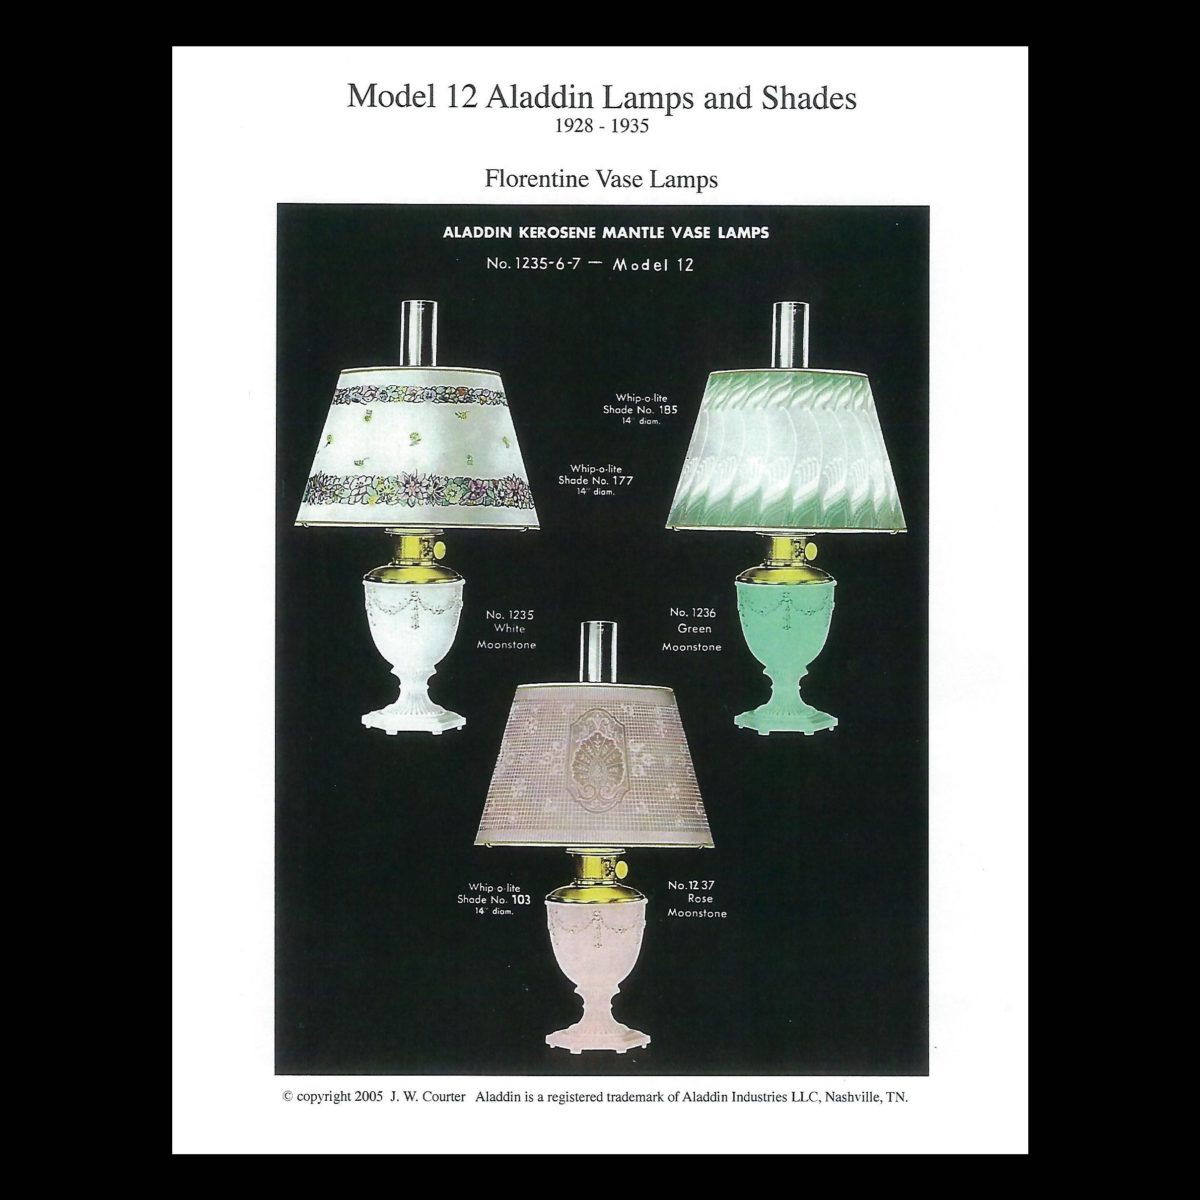 Model 12 Aladdin Lamps And Shades 1928 1935 Imperial Lighting Co